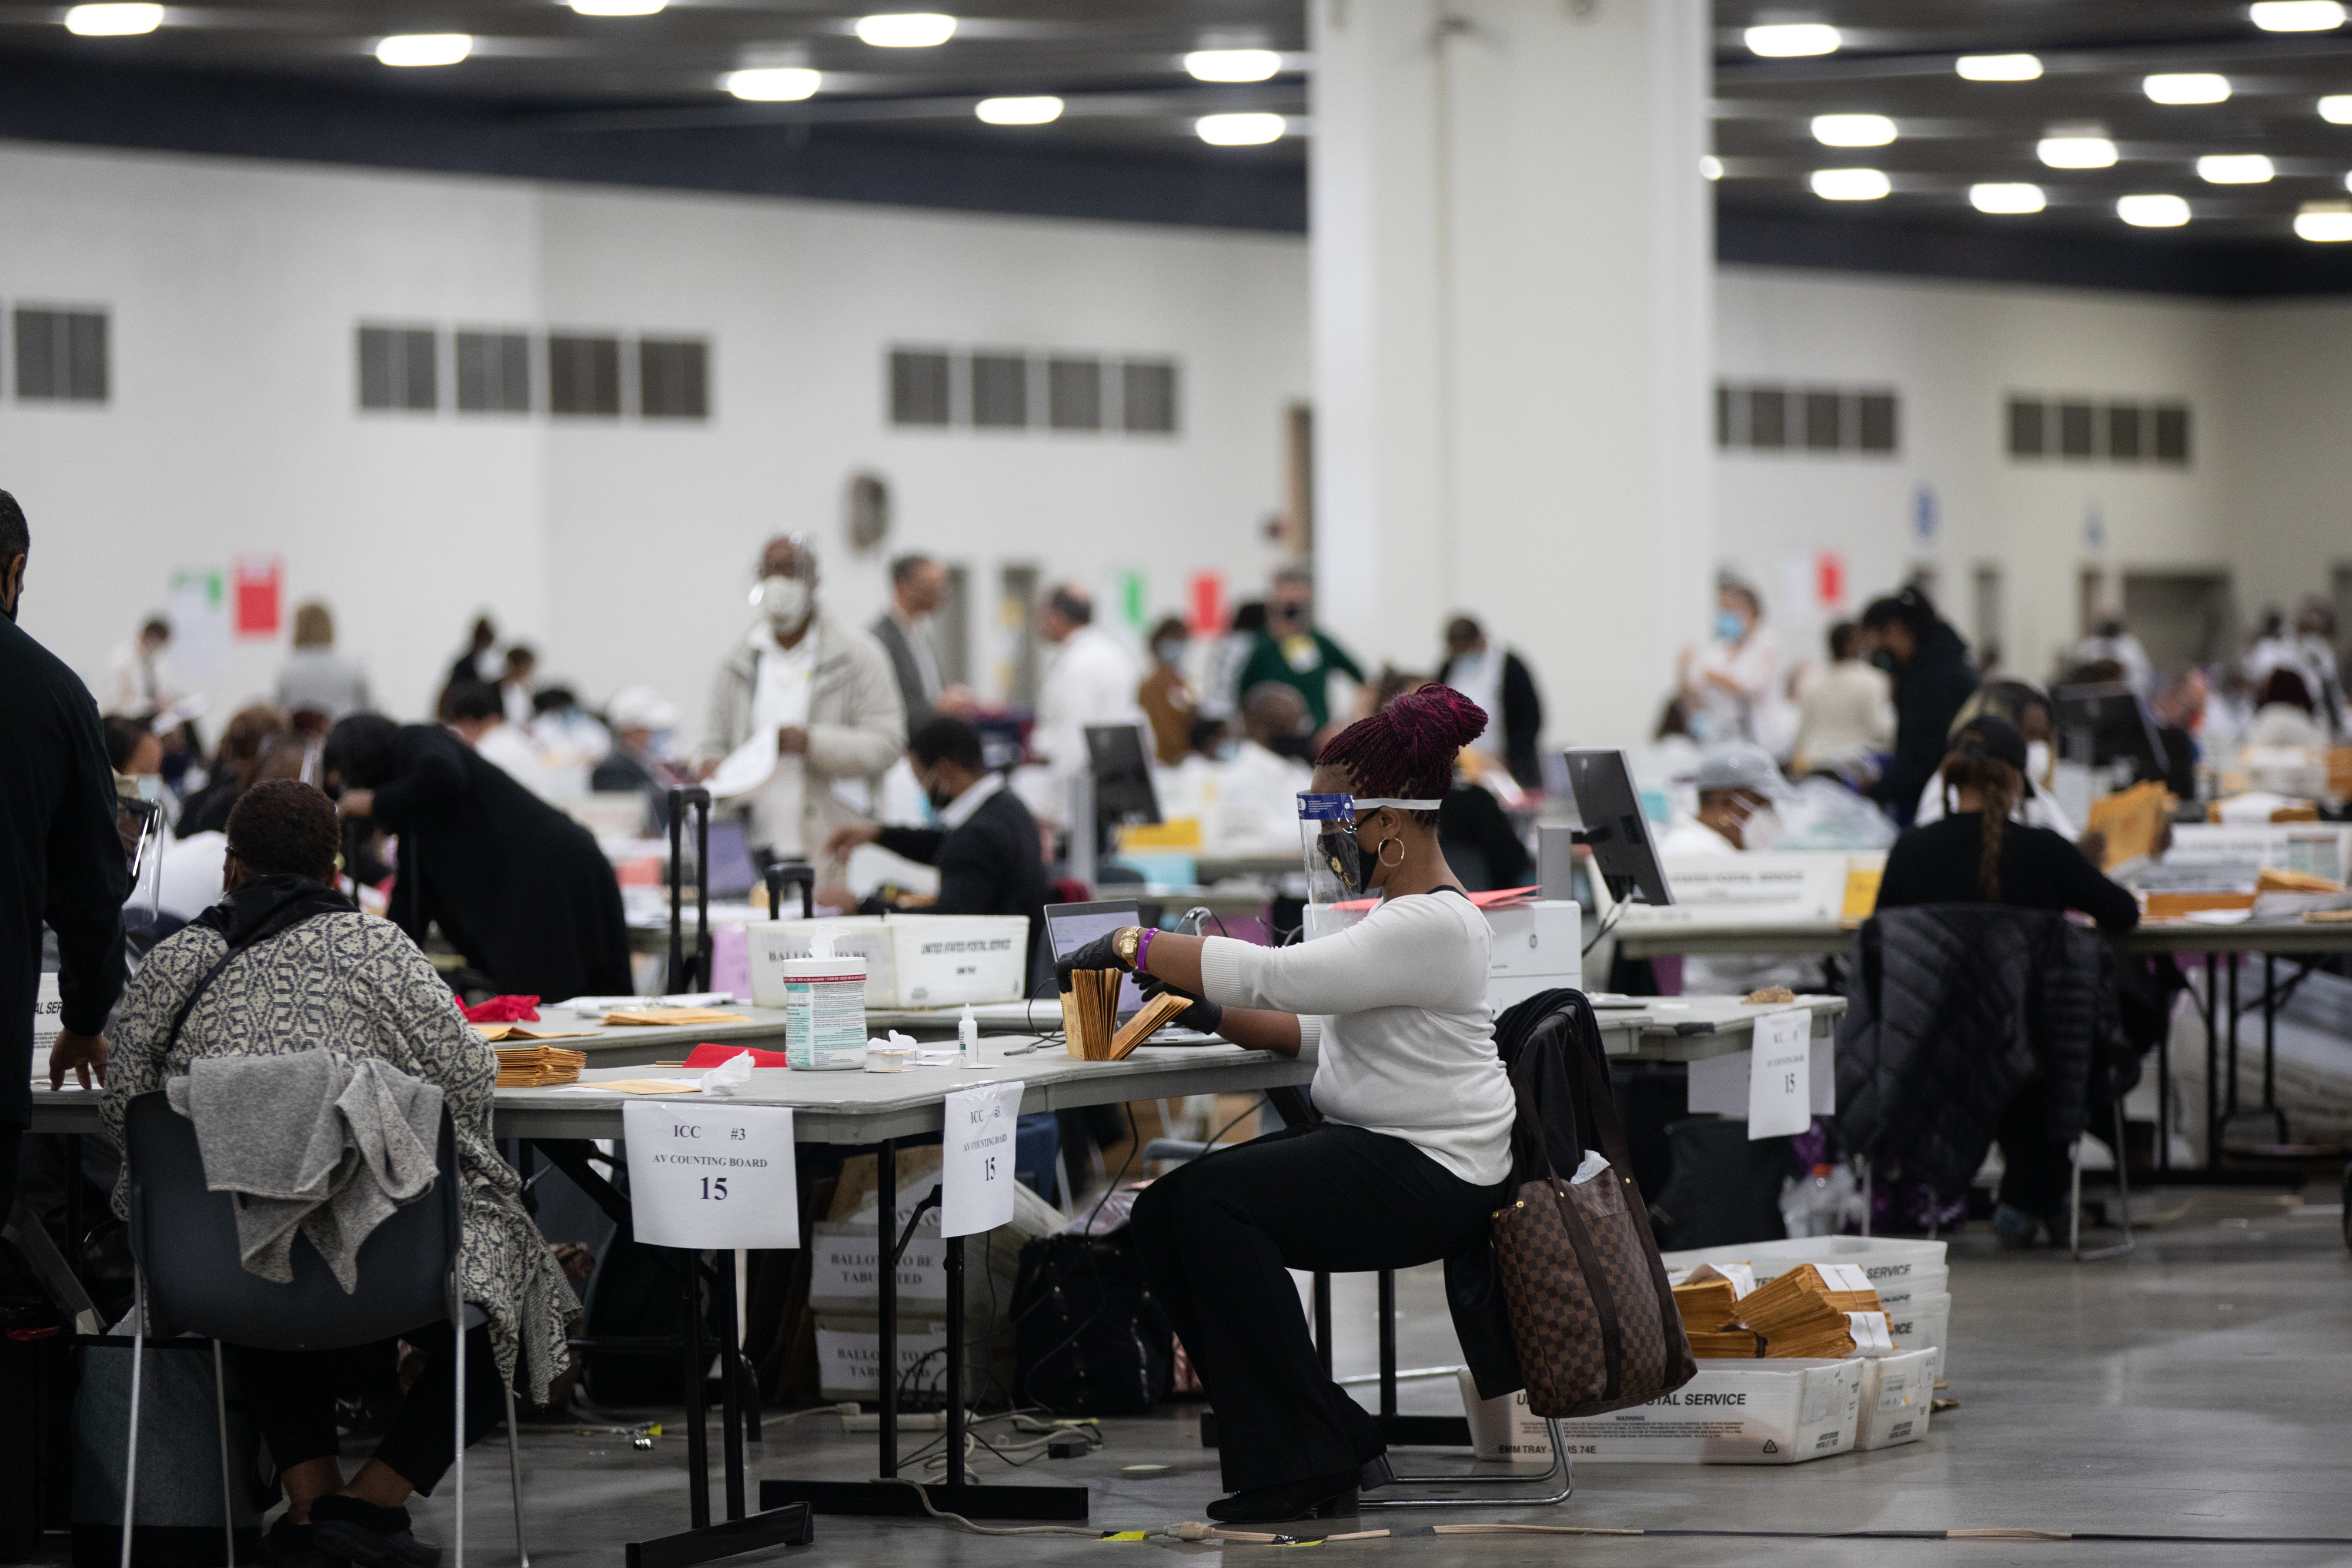 Volunteers wearing protective masks process absentee ballots for the 2020 Presidential election at the TCF Center in Detroit, Michigan on Nov. 3, 2020.